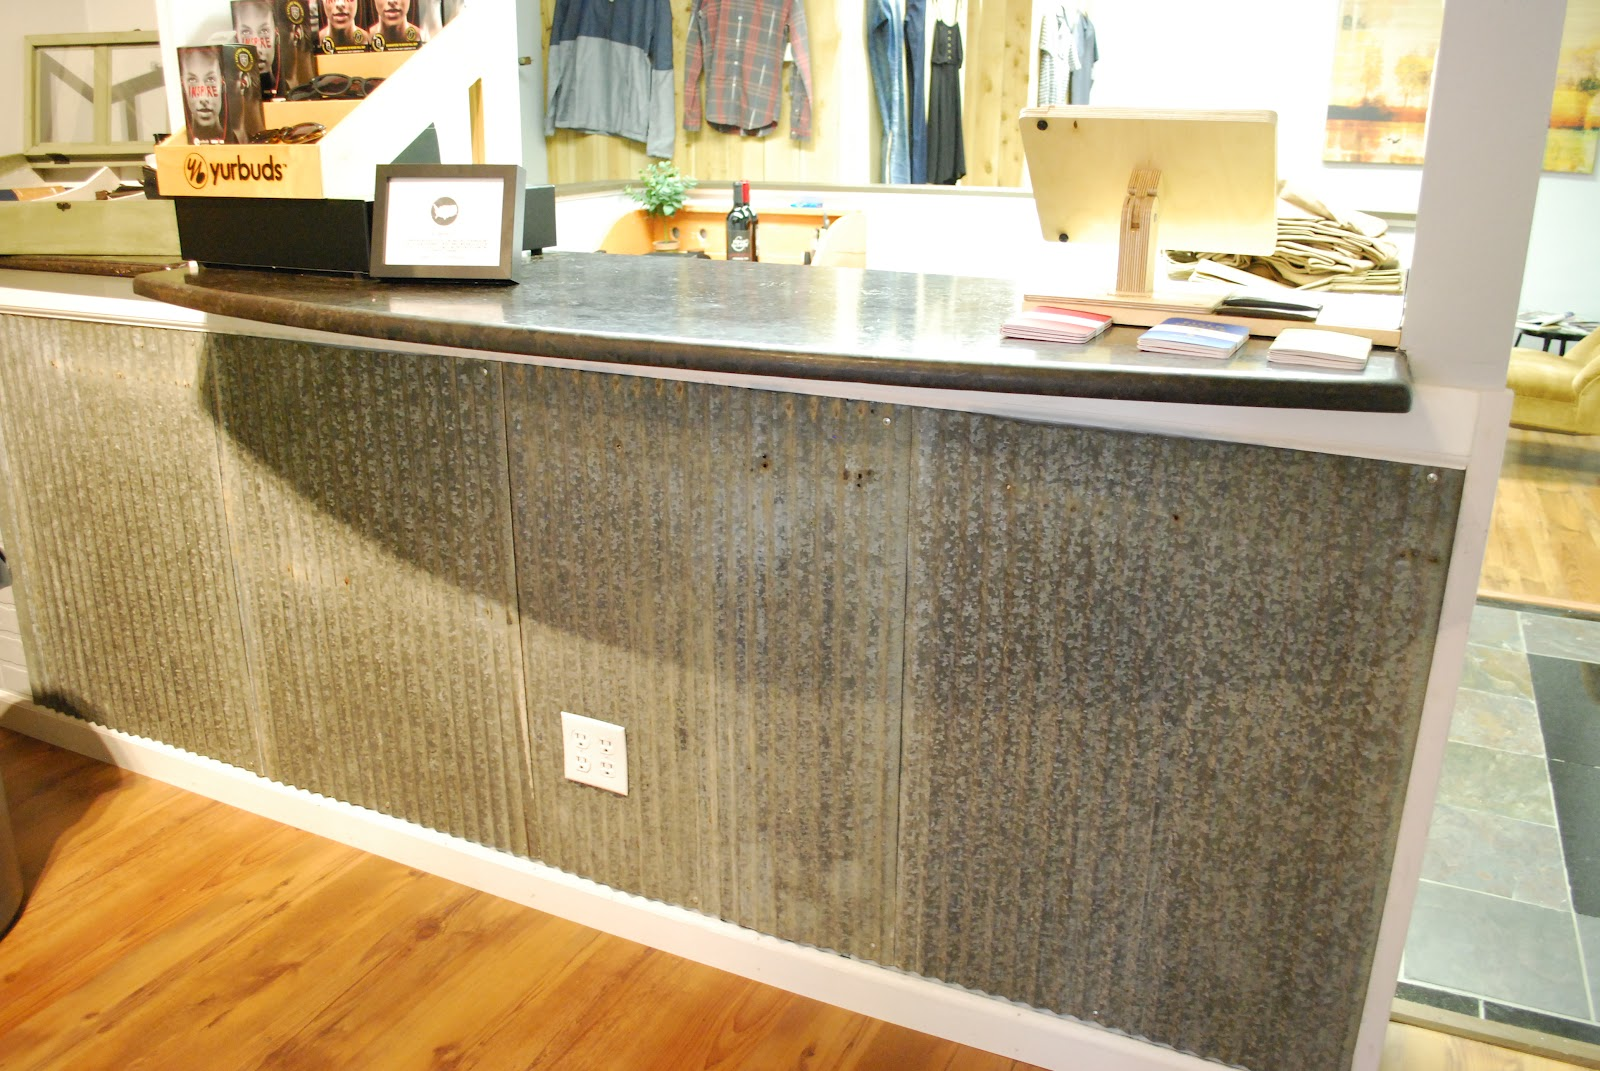 The White Rabbit: Grand Opening Fun at East and West, a new boutique